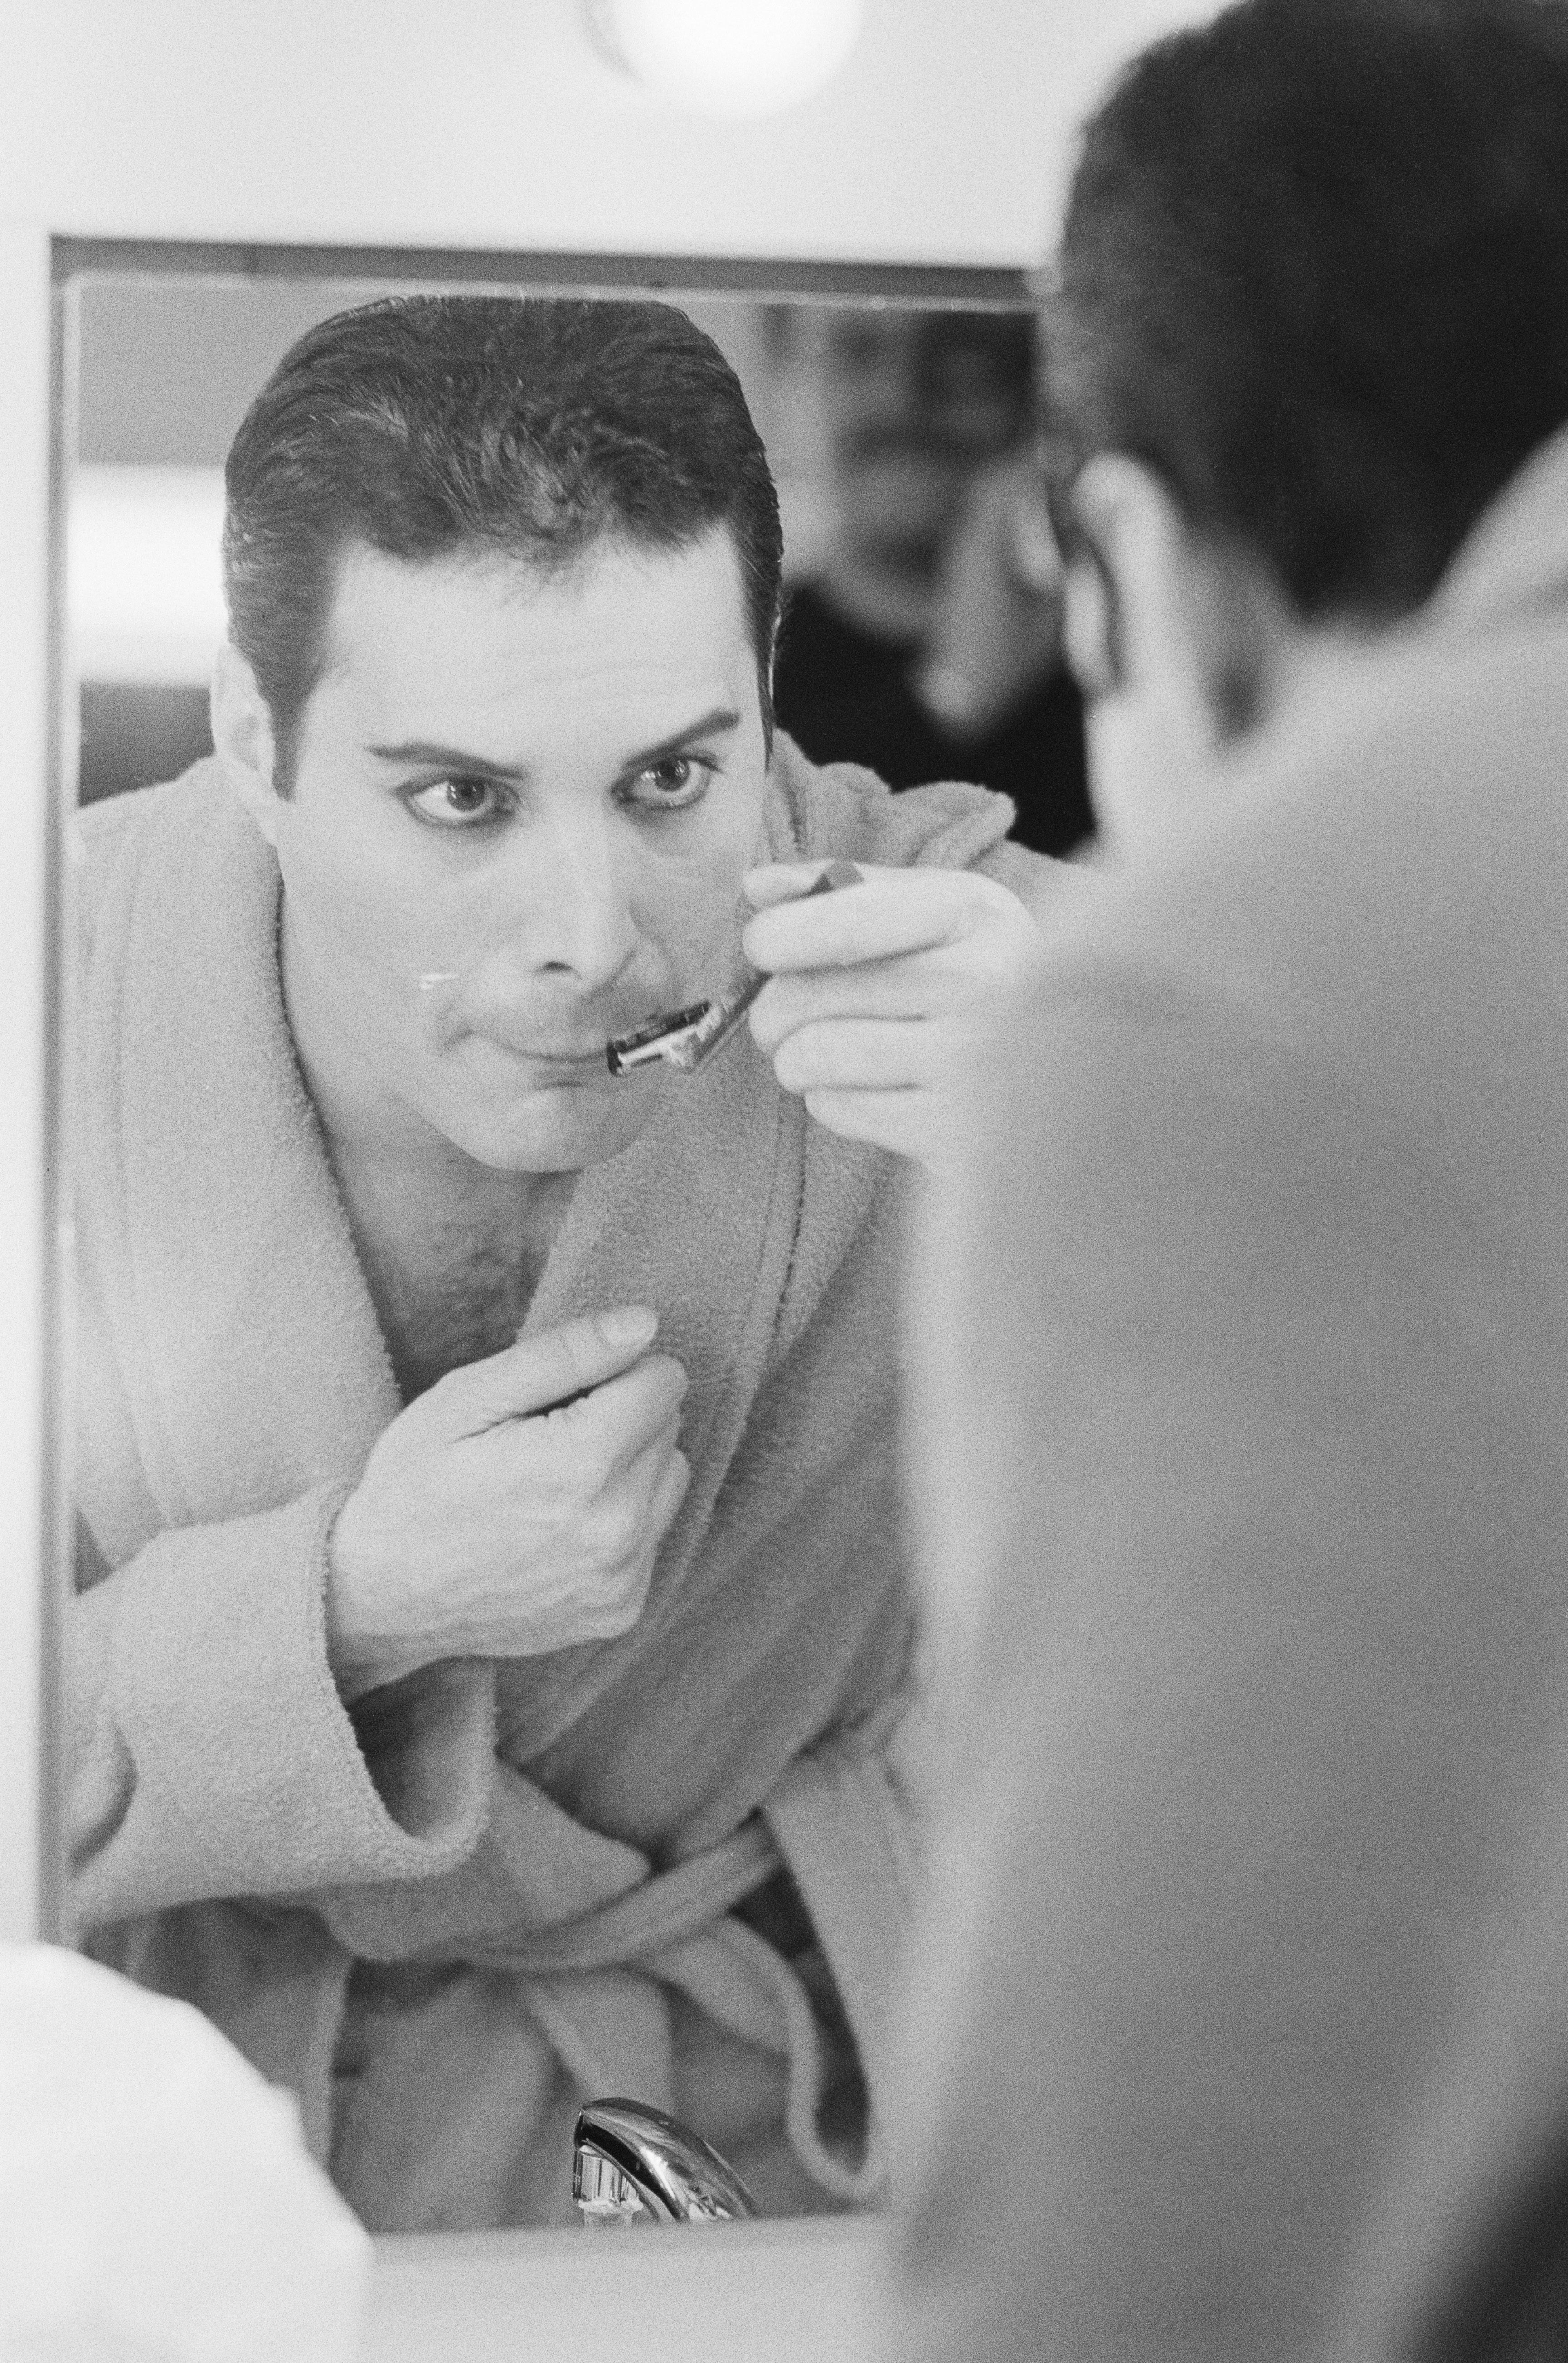 Queen frontman Freddie Mercury (1946 - 1991) shaving his moustache, 12th April 1984. (Photo by Steve Wood/Express/Getty Images)